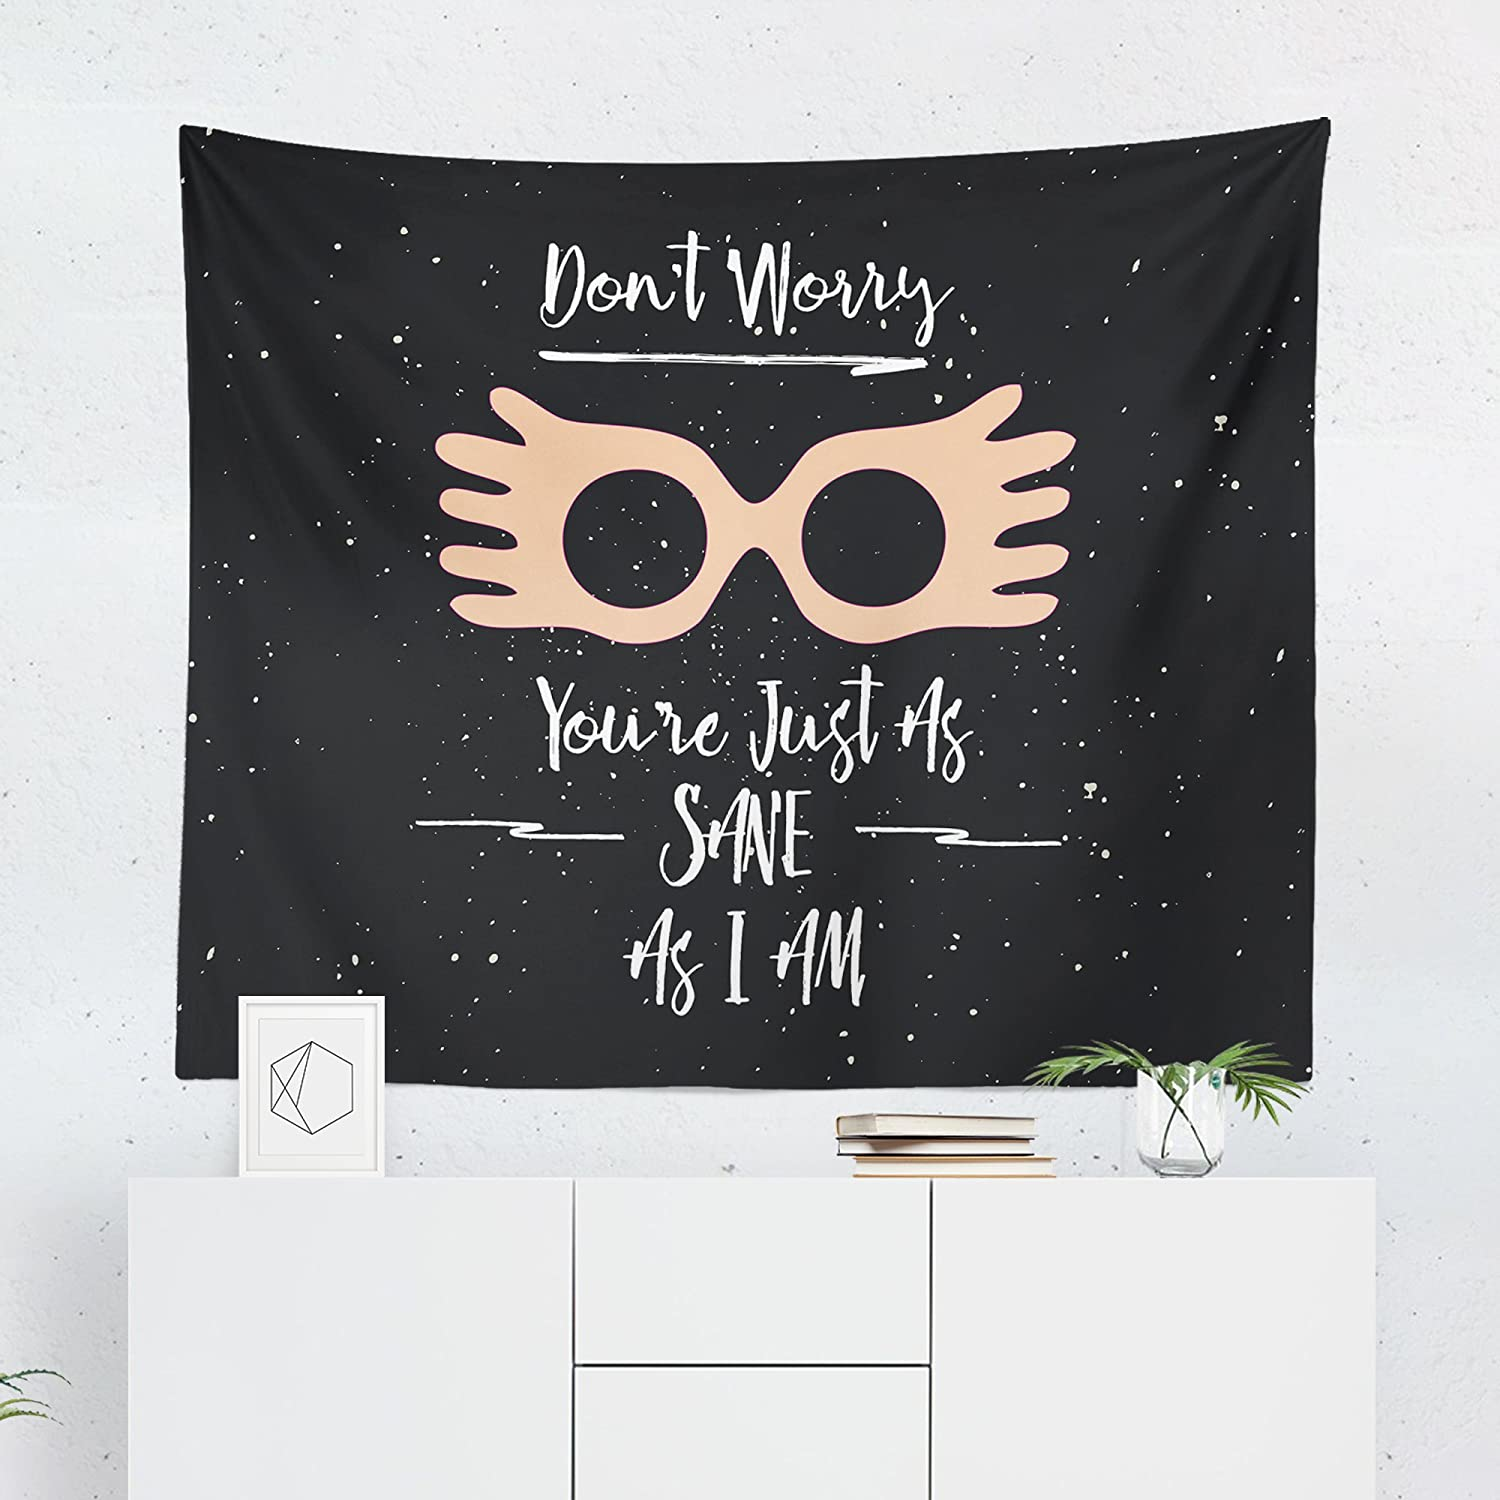 Harry Potter Quote Tapestry - Luna Lovegood Hogwarts Wall Tapestries Hanging Décor Bedroom Dorm College Living Room Home Art Print Decoration Decorative - Printed in the USA - Small Medium Large Sizes